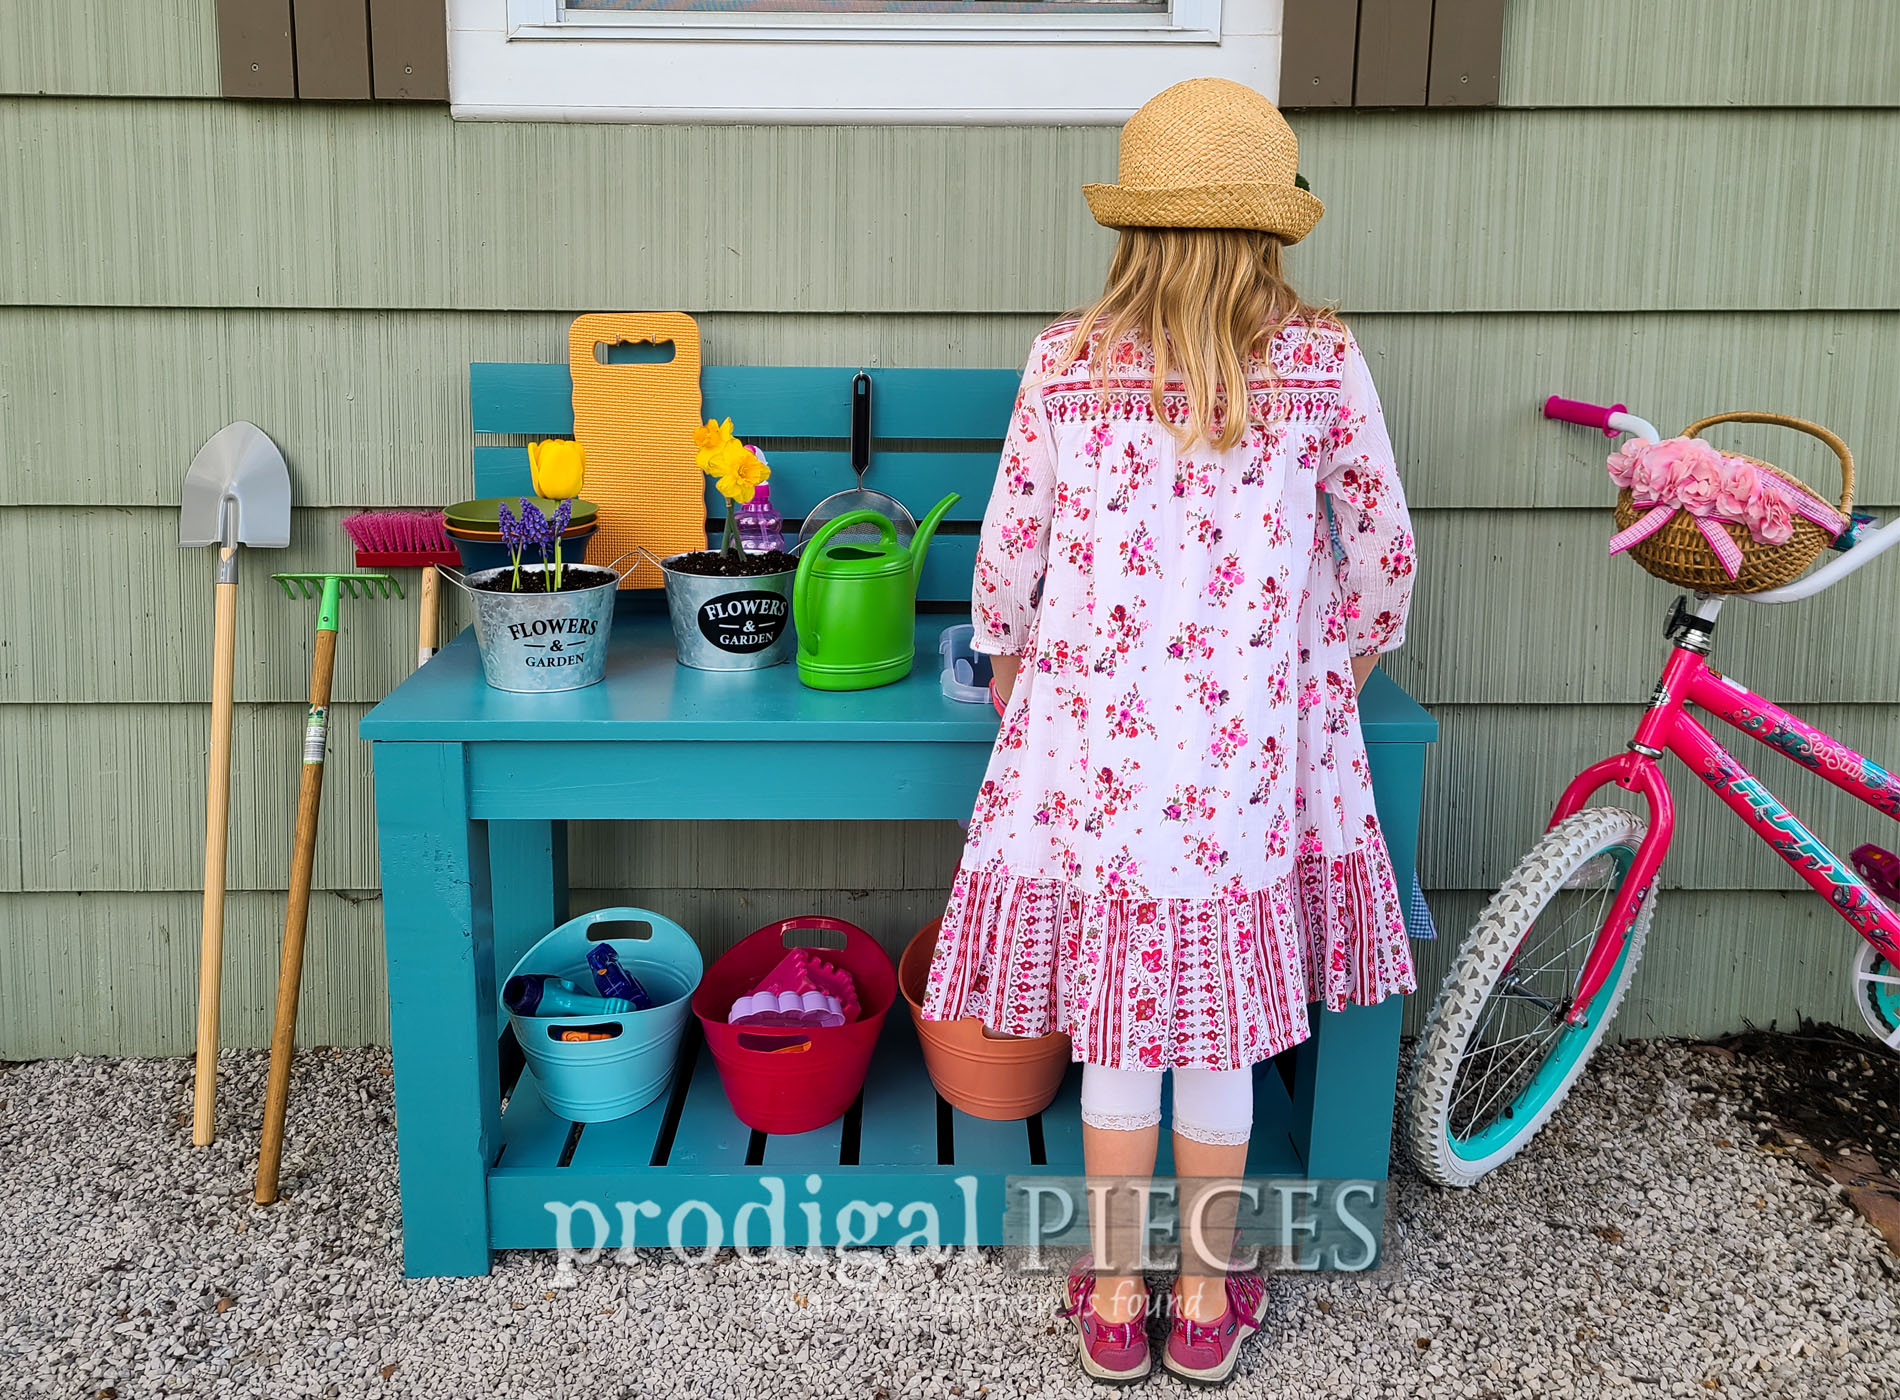 Featured Upcycled Mud Bar Potting Bench Built by JC & Larissa of Prodigal Pieces | prodigalpieces.com #prodigalpieces #kids #play #diy #toys #summer #backyard